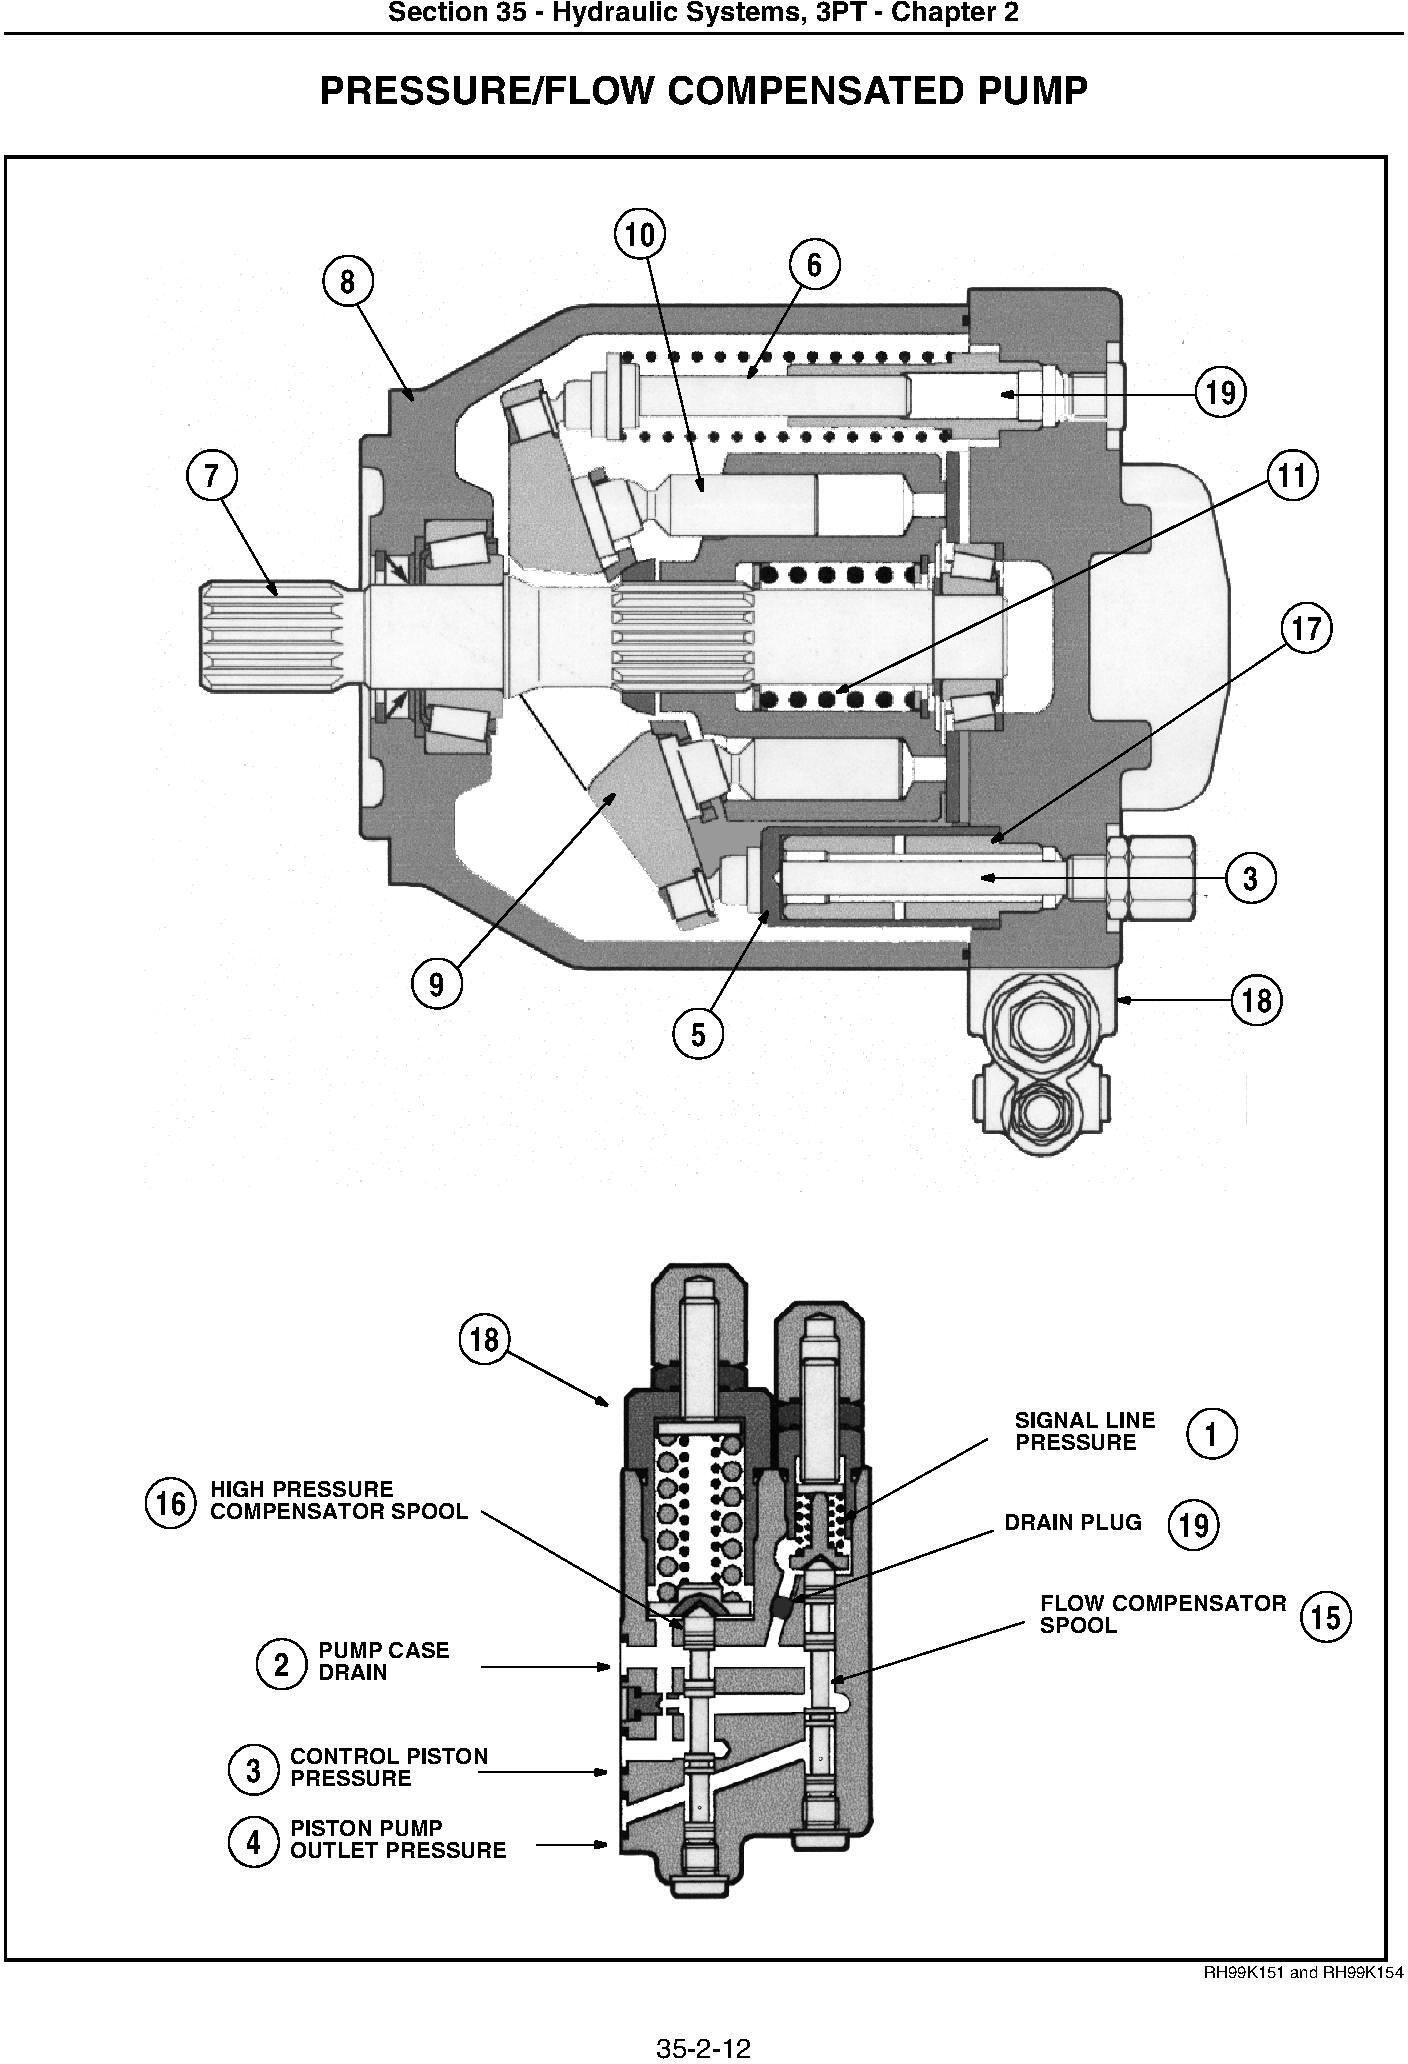 New Holland T9010,T9020, T9030,T9040, T9050, T9060, TJ280/330/380/430/480/530 Tractor Service Manual - 3